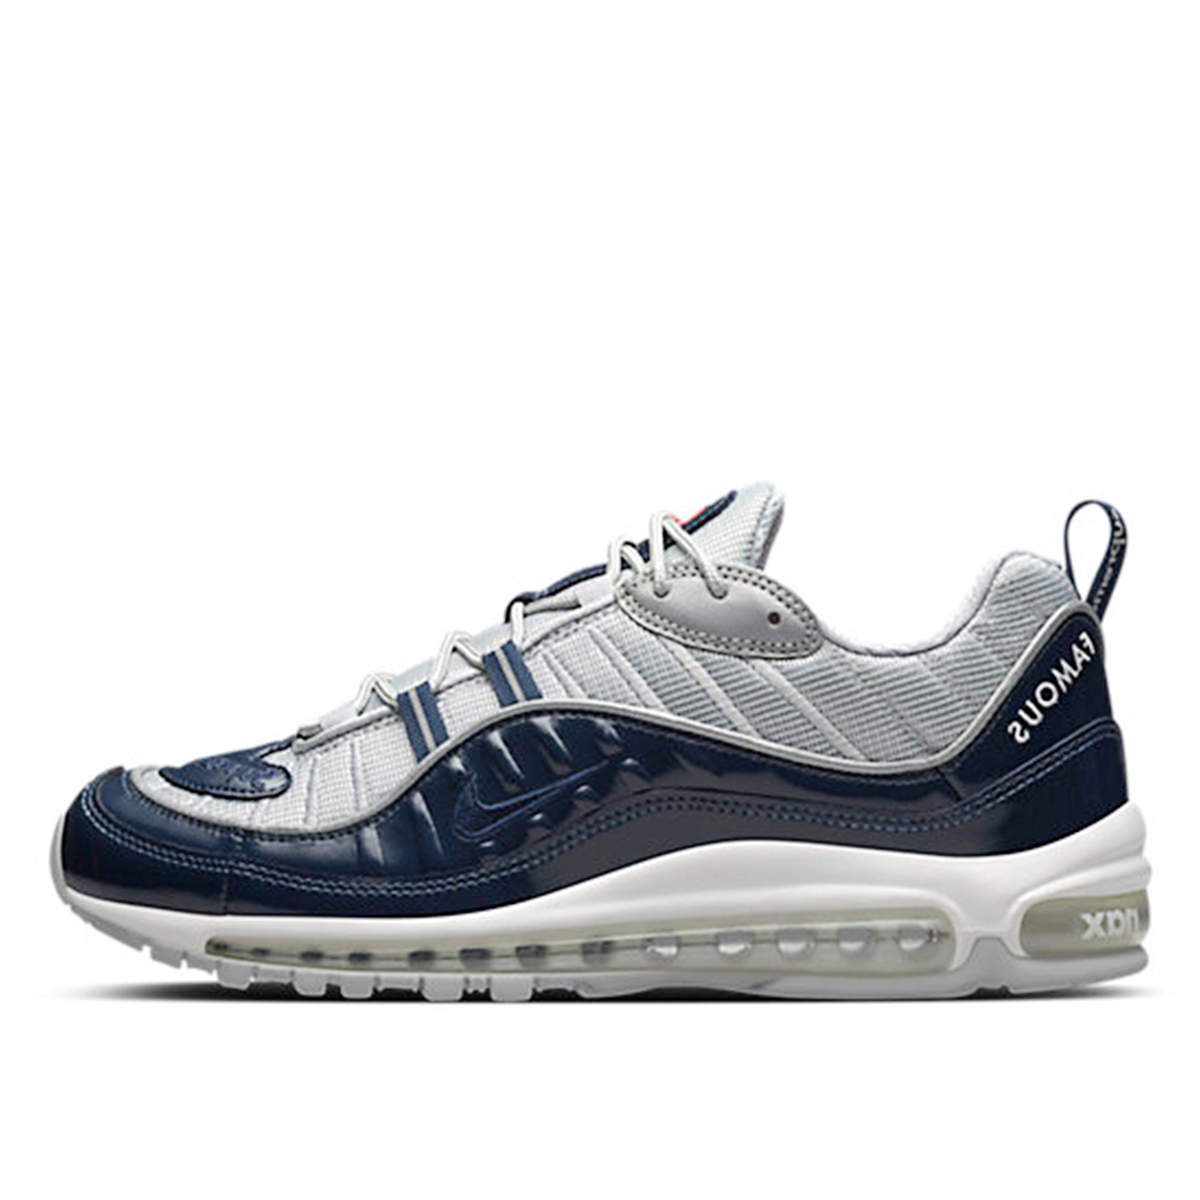 Where To Buy And Sell Nike Air Max 98 Supreme Obsidian 844694 400